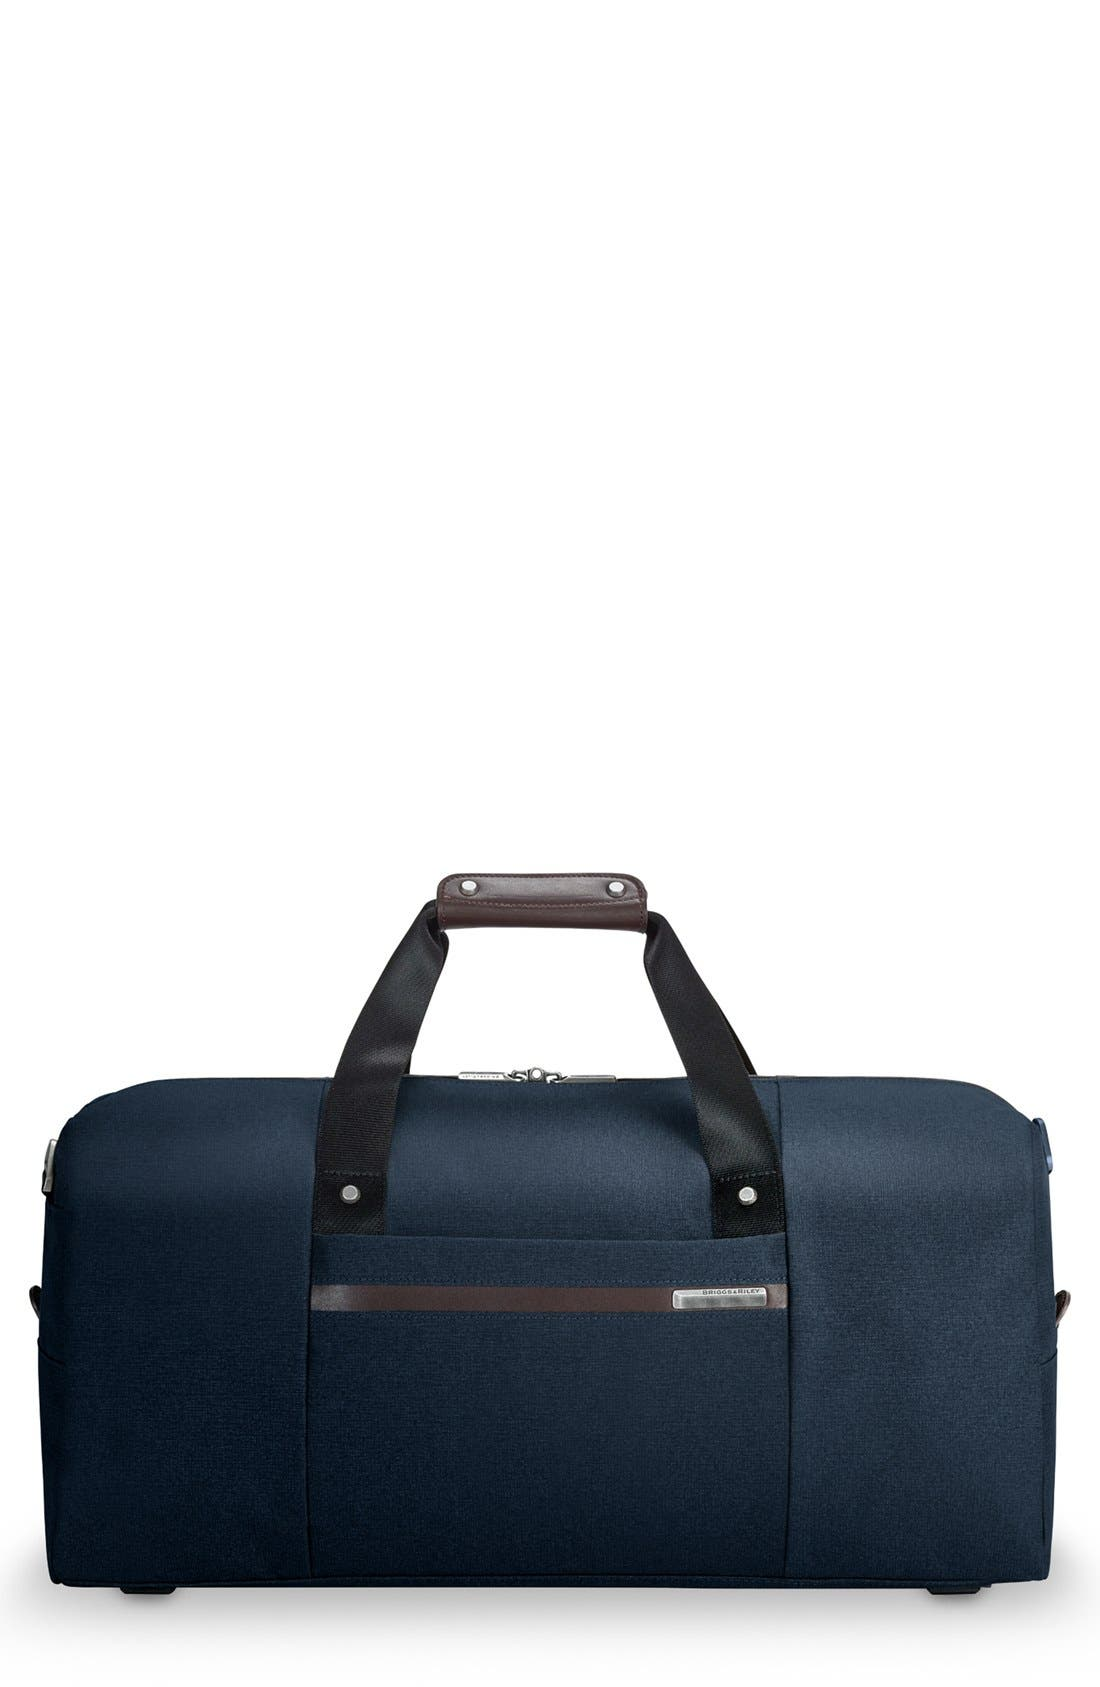 Briggs & Riley 'Kinzie Street - Simple' Duffel Bag